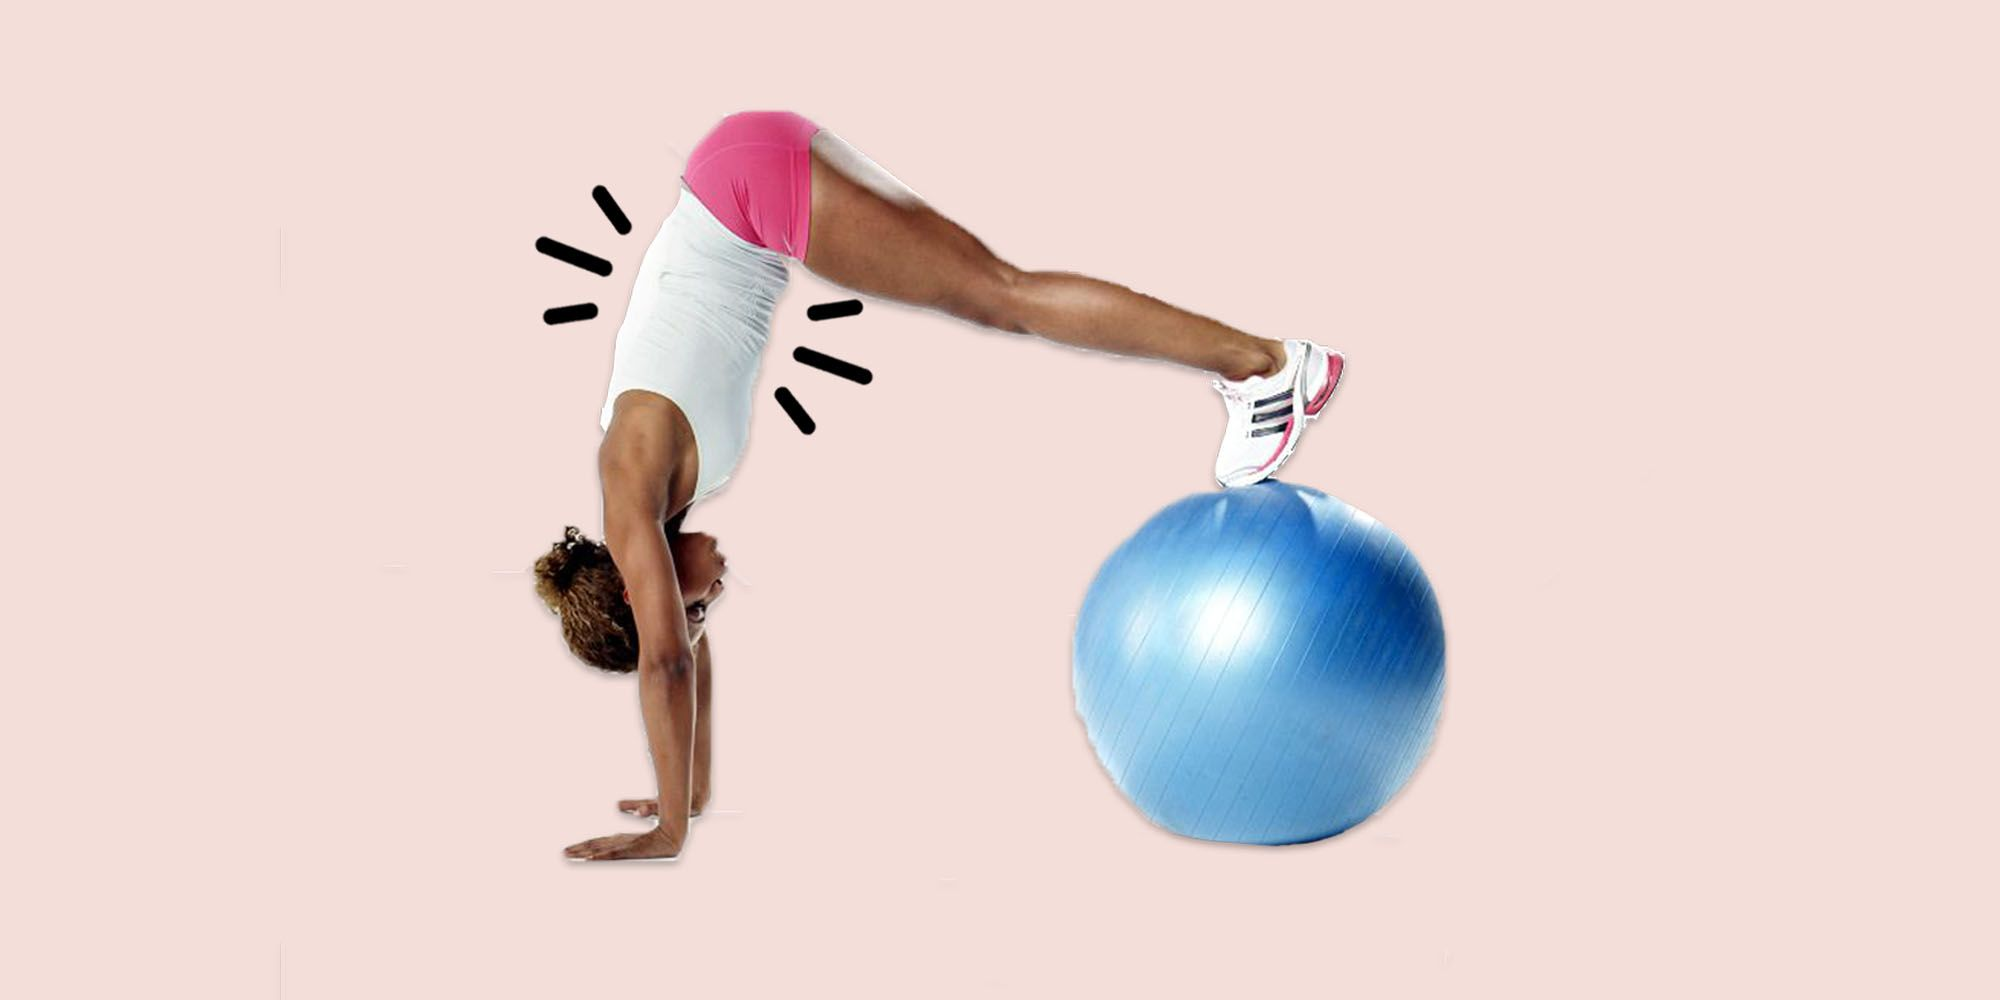 How to Do a Swiss Ball Pike to Really Tax Your Core and Build Strength